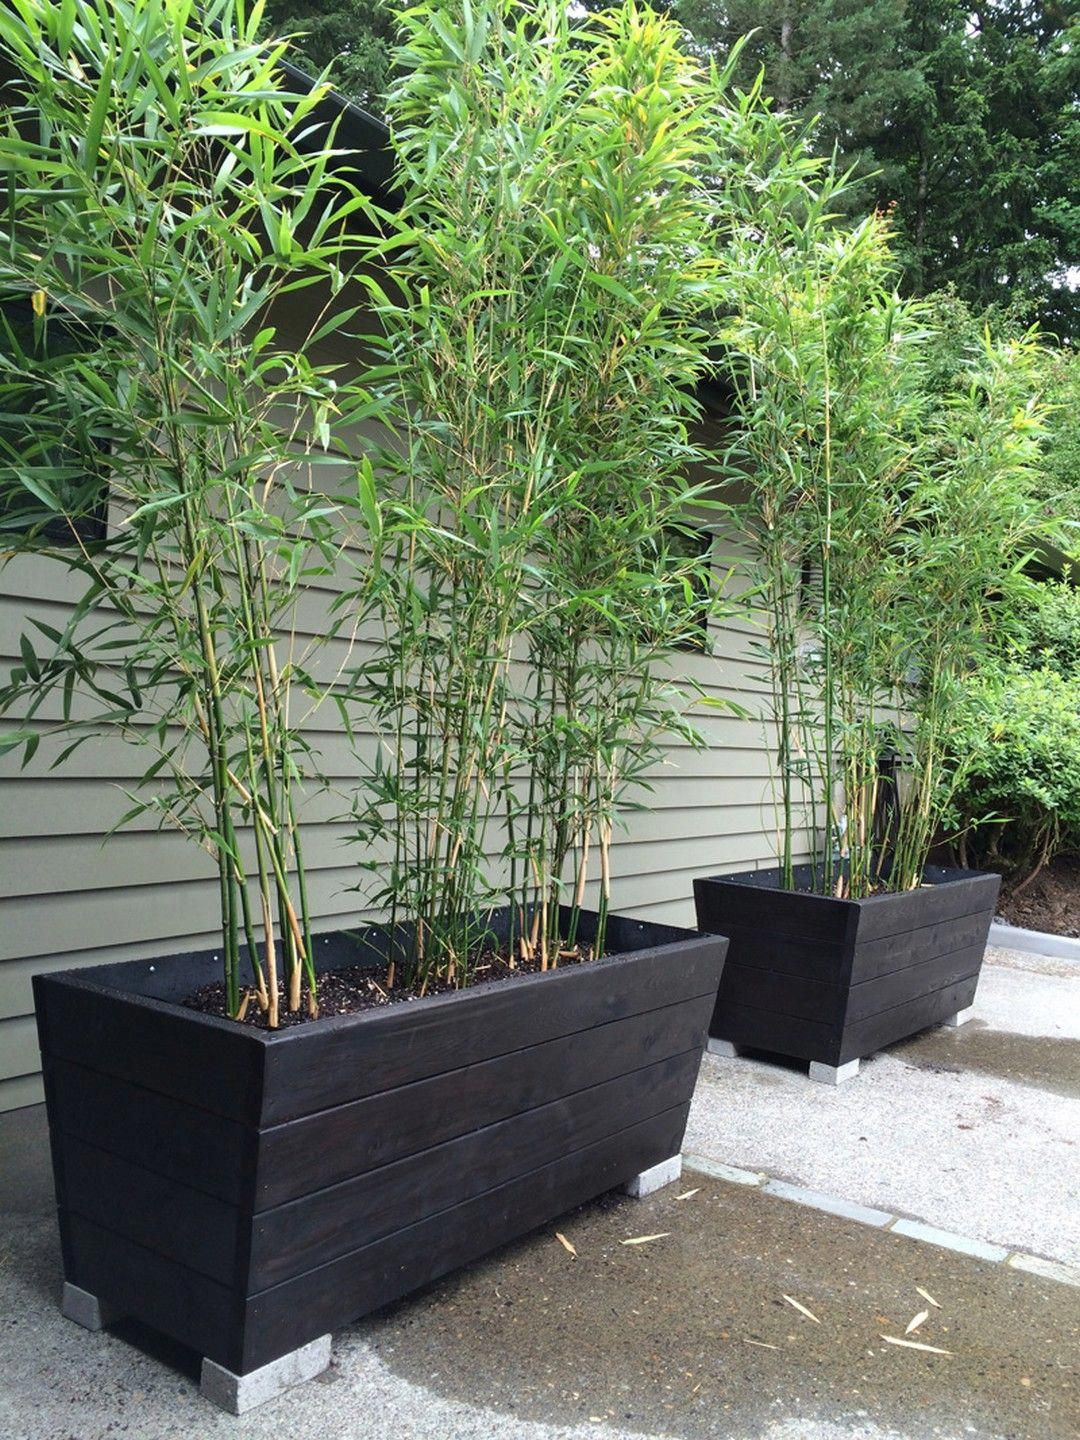 Pin by iris on Growing The Best Vegetables | Bamboo planter, Wood planters,  Diy planters